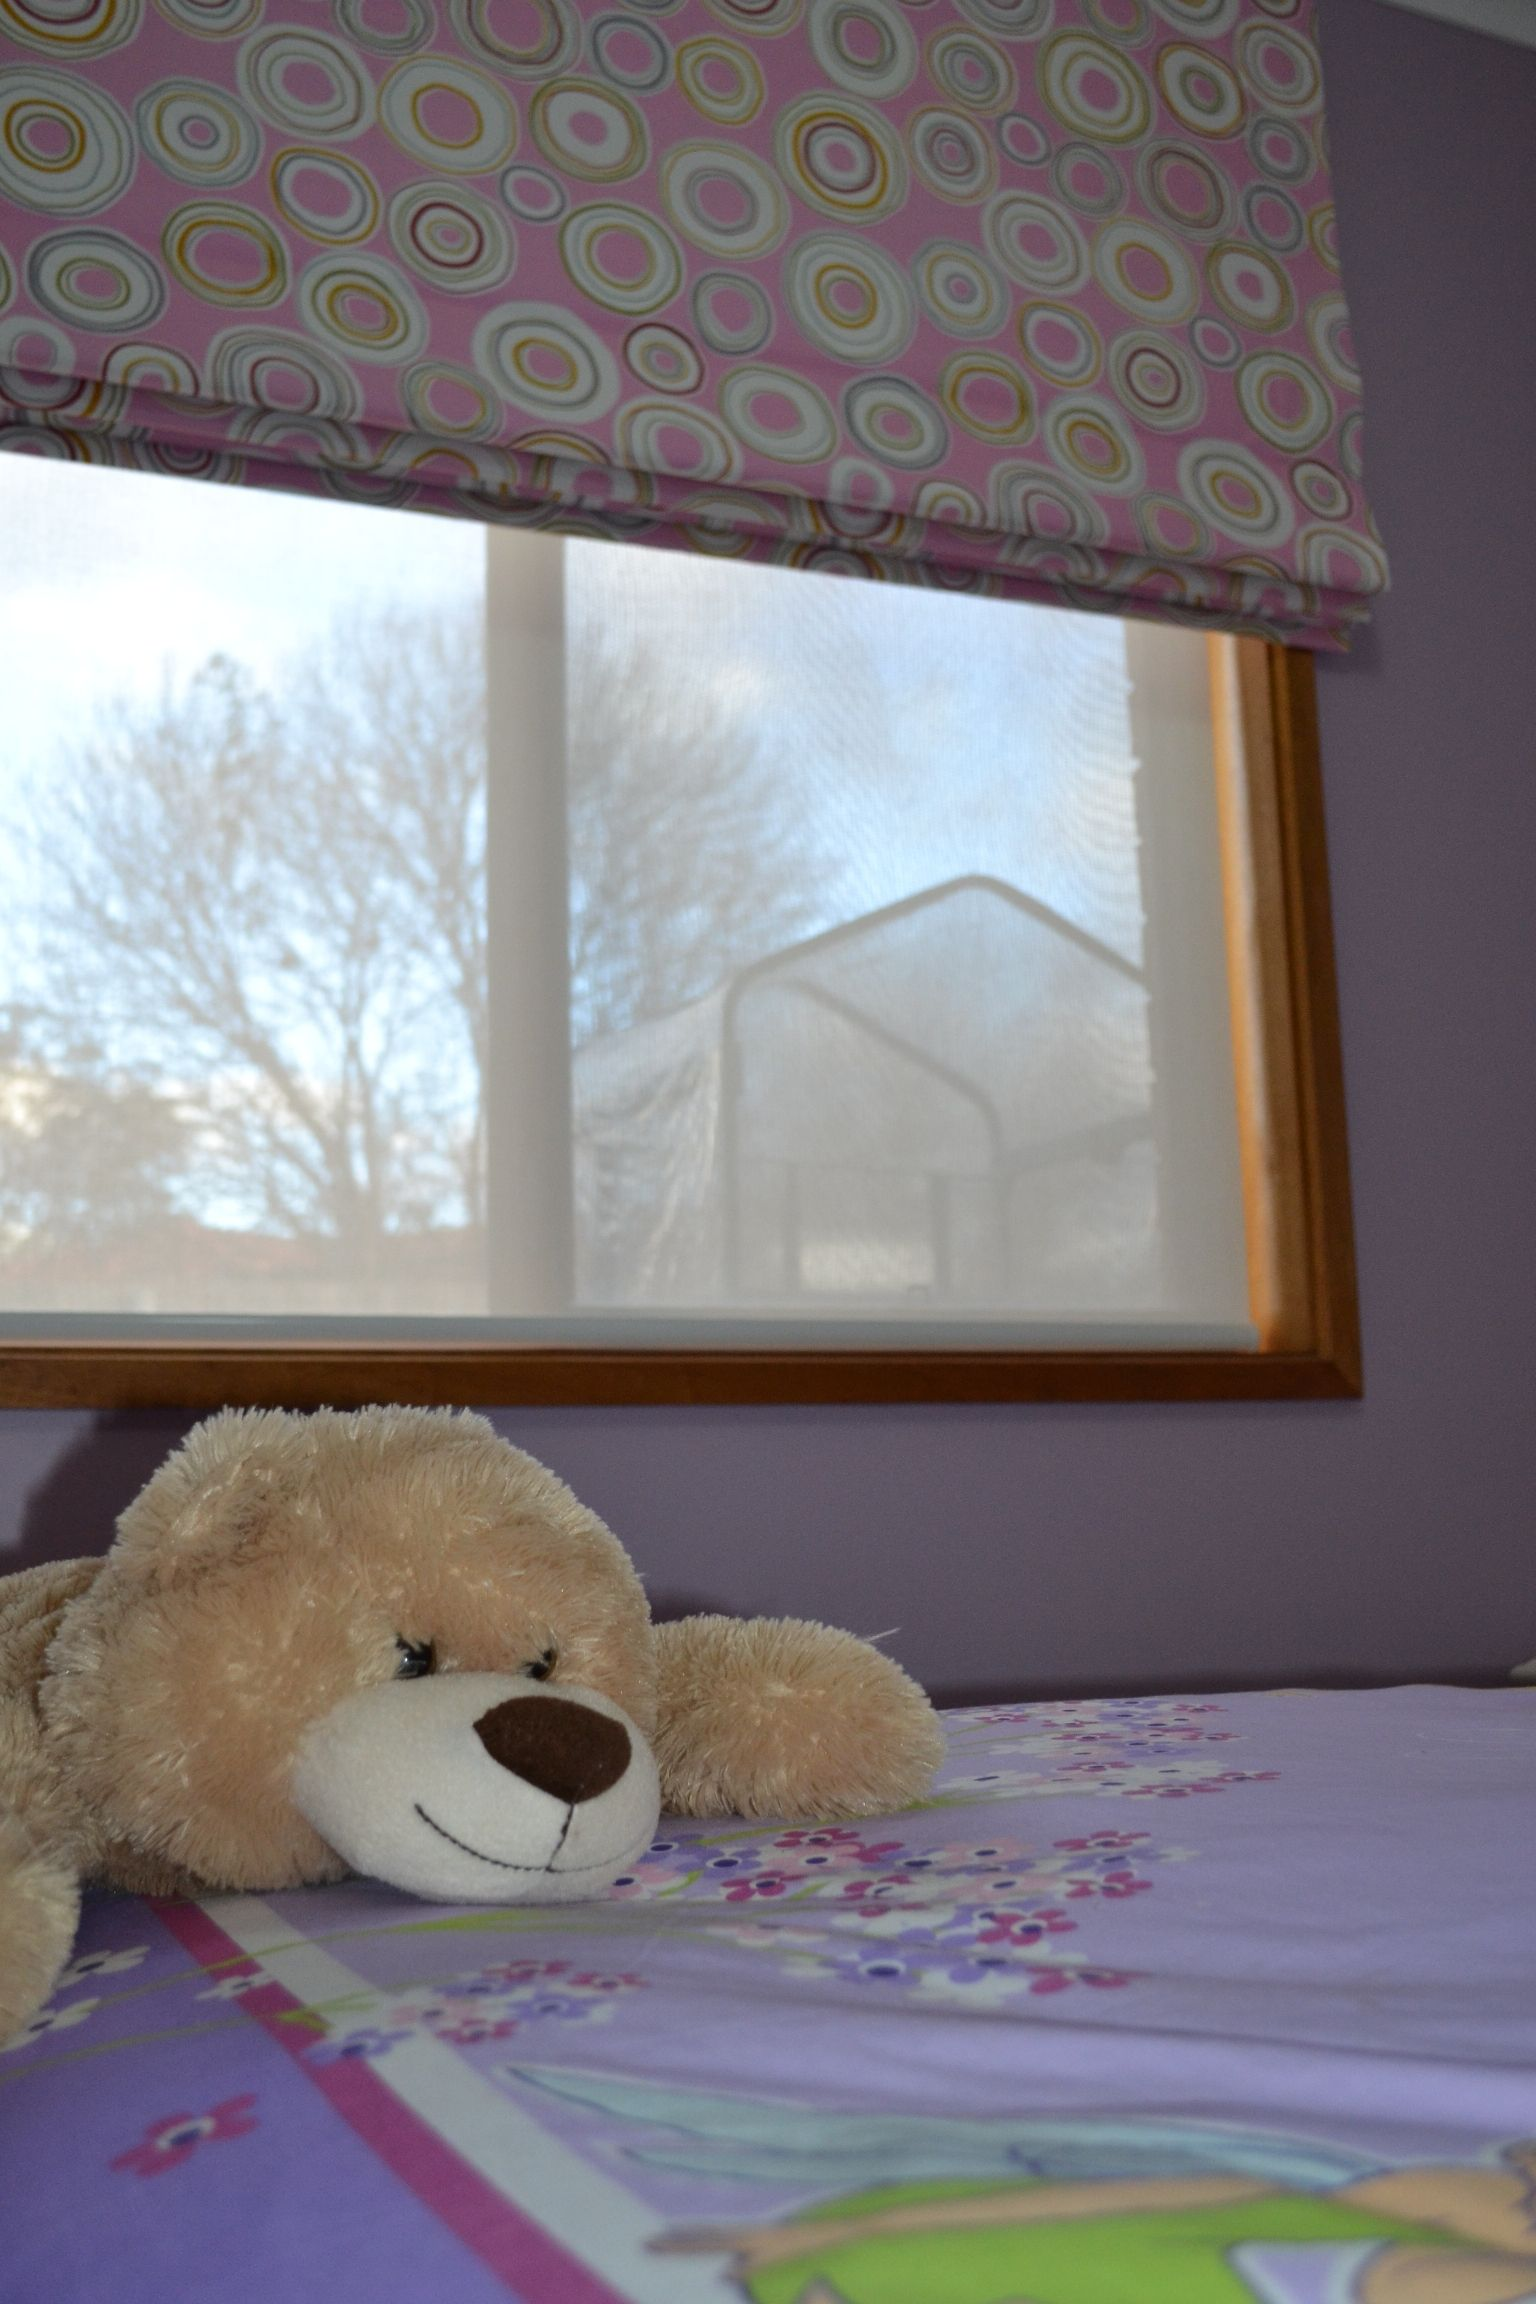 Products rollers in vogue blinds - Browse Through The Online Photo Gallery From Curtain Blind Creations In Canberra For Ideas Give Us A Call On 02 6162 0415 Today To Receive A Free Quote